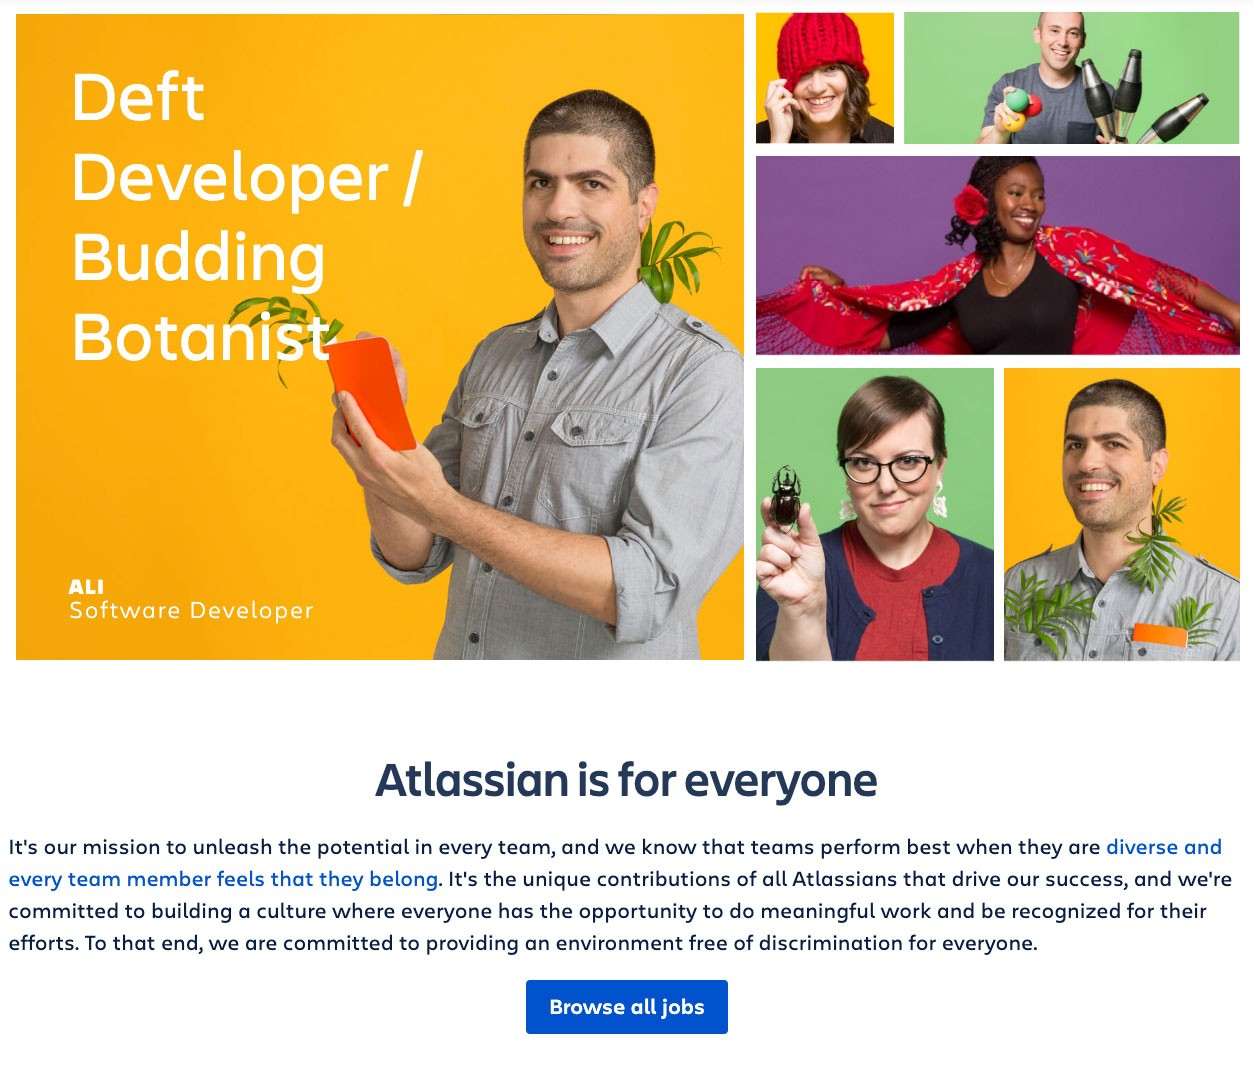 Screenshot from Atlassian career page. Includes image of 5 Atlassian employees showing off their hobbies, including dancing, botany, and bugs.  Text box reads:  It's our mission to unleash the potential in every team, and we know that teams perform best when they are diverse and every team member feels that they belong. It's the unique contributions of all Atlassians that drive our success, and we're committed to building a culture where everyone has the opportunity to do meaningful work and be recognized for their efforts. To that end, we are committed to providing an environment free of discrimination for everyone.